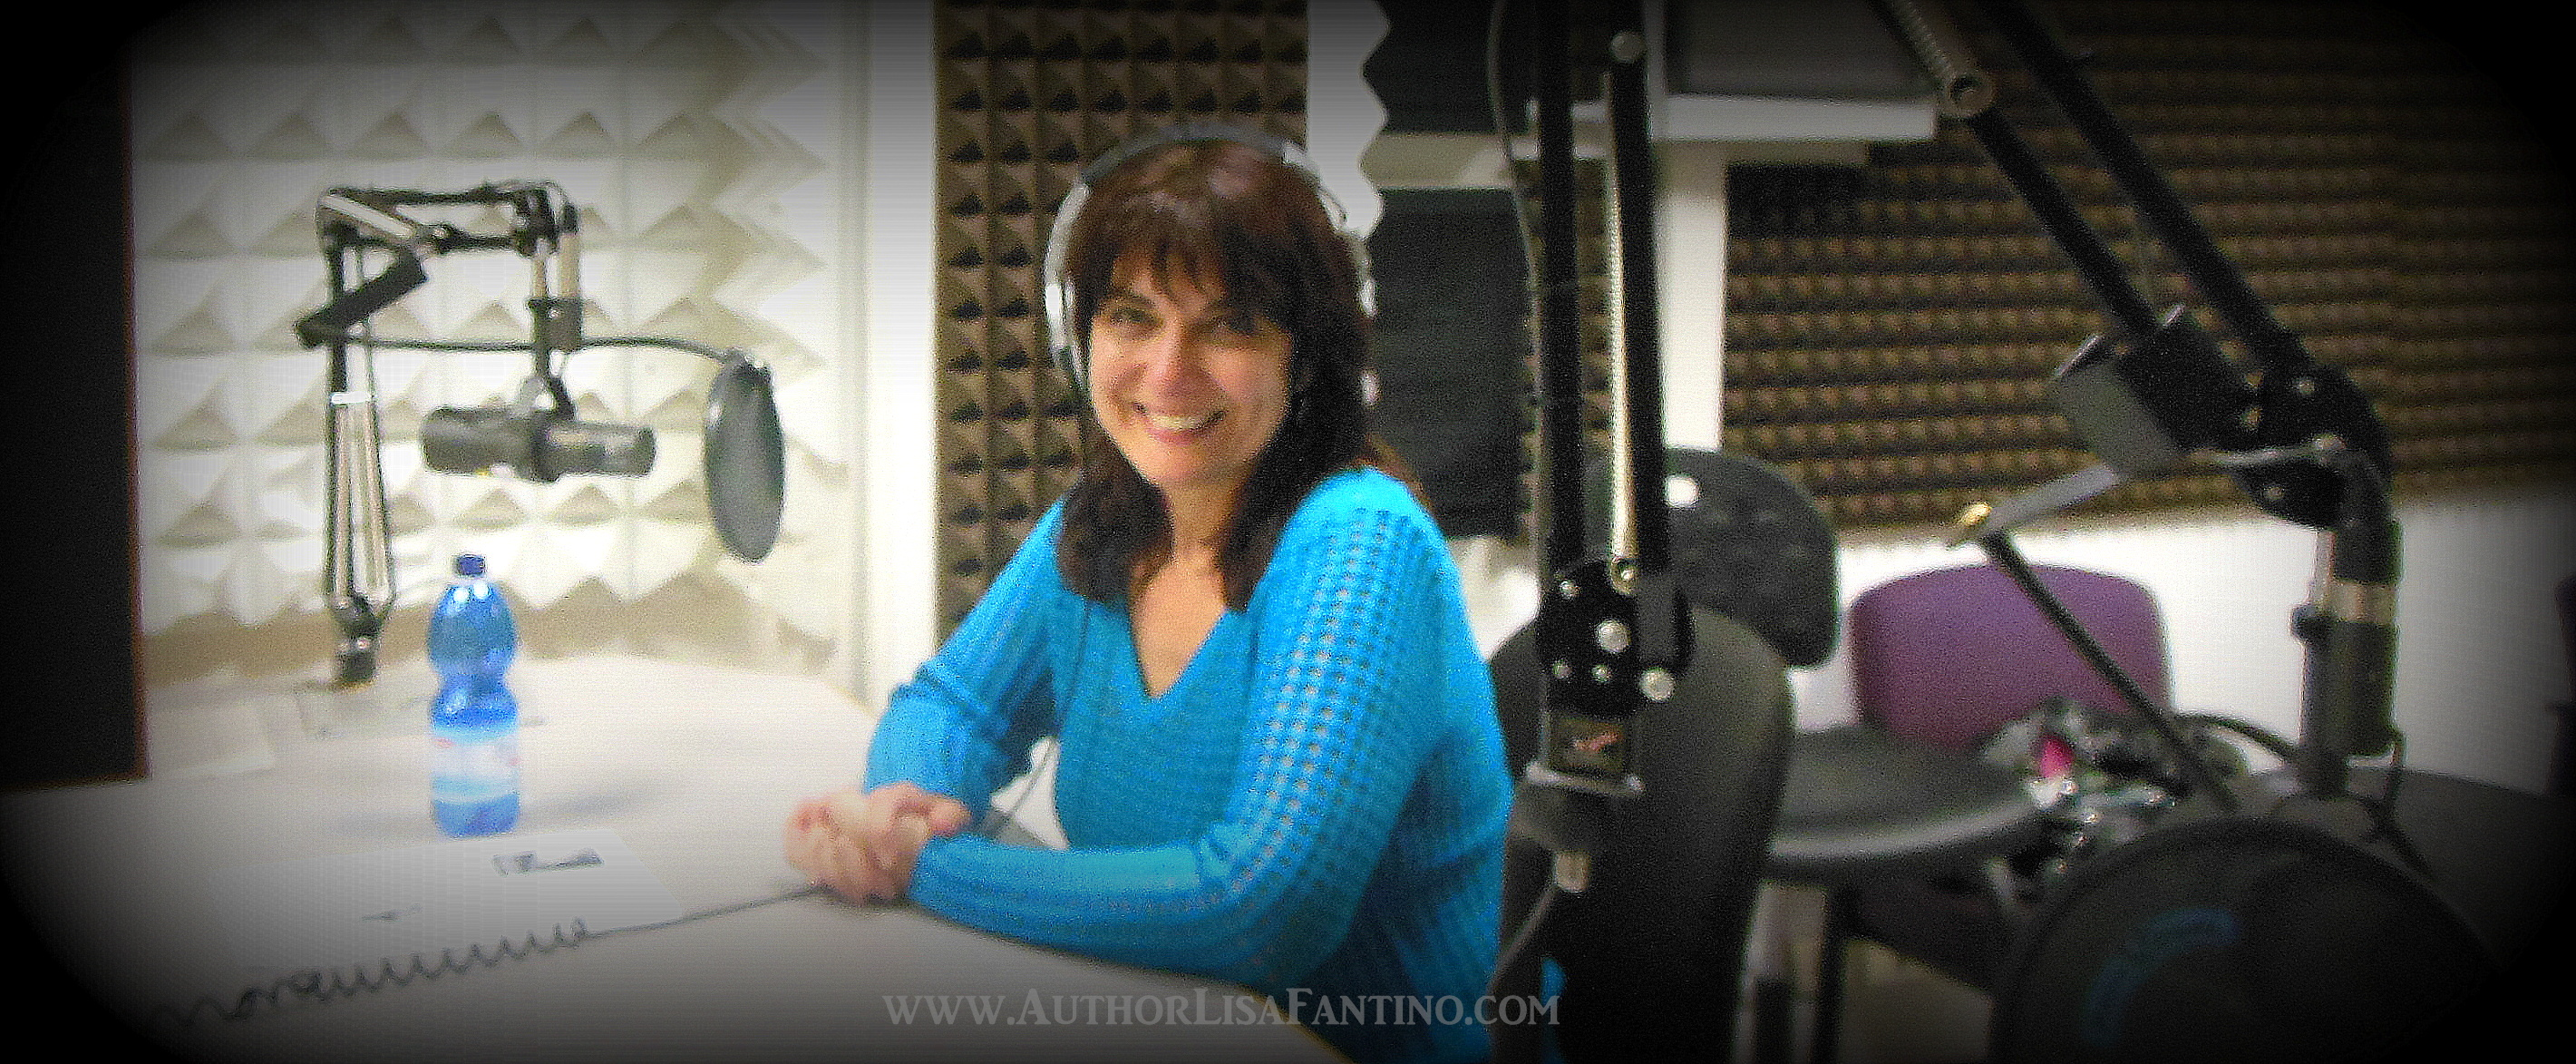 Lisa Fantino on the air